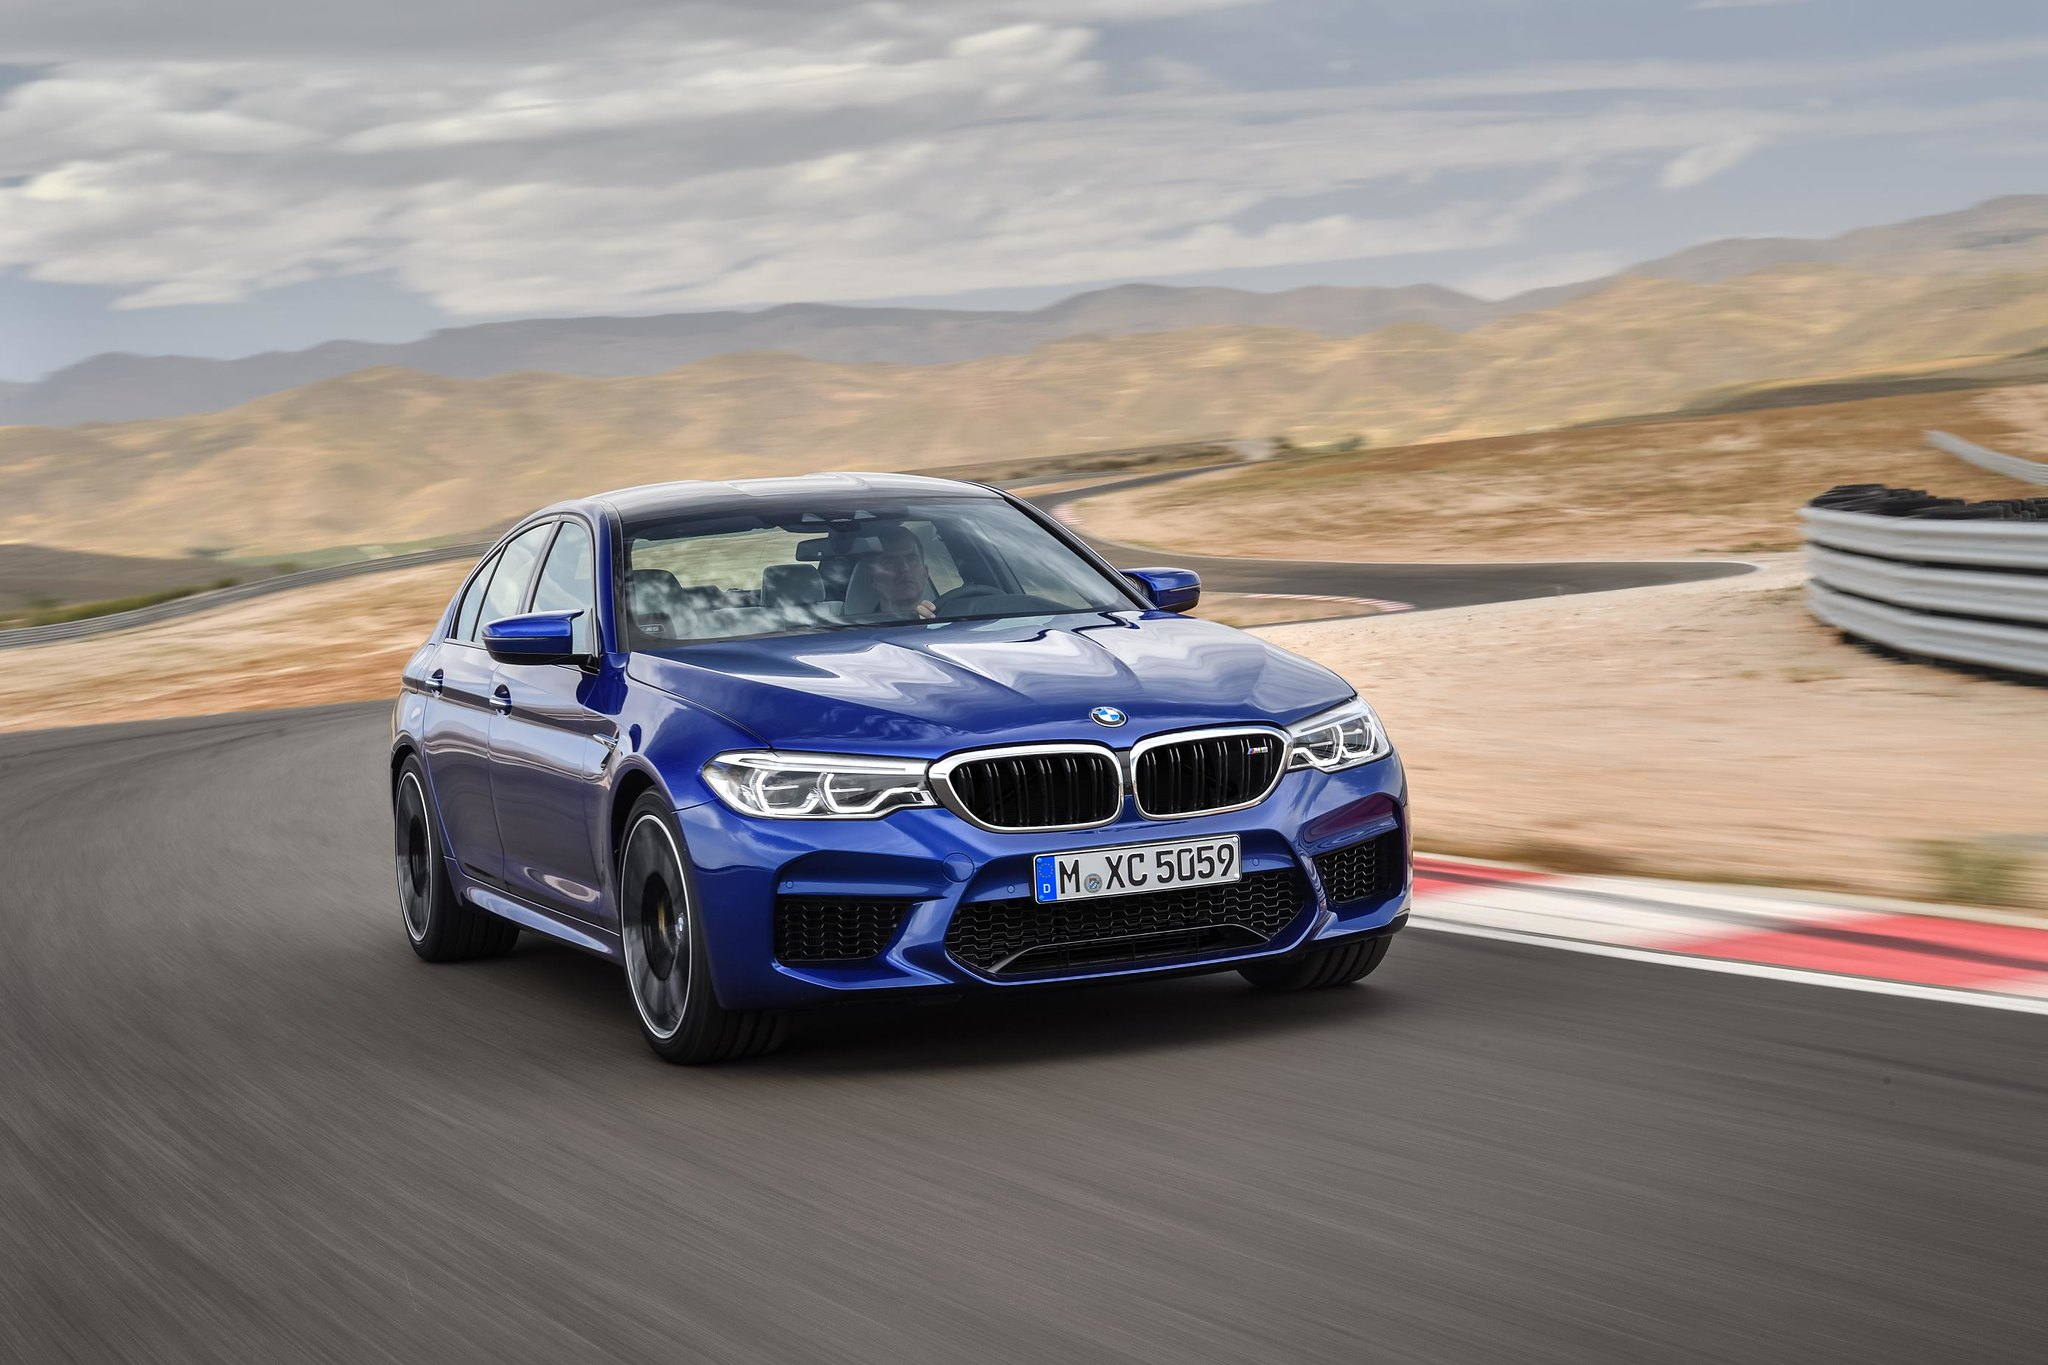 The 2018 BMW M5 is for when you need to do 0-60 in 3.2 seconds